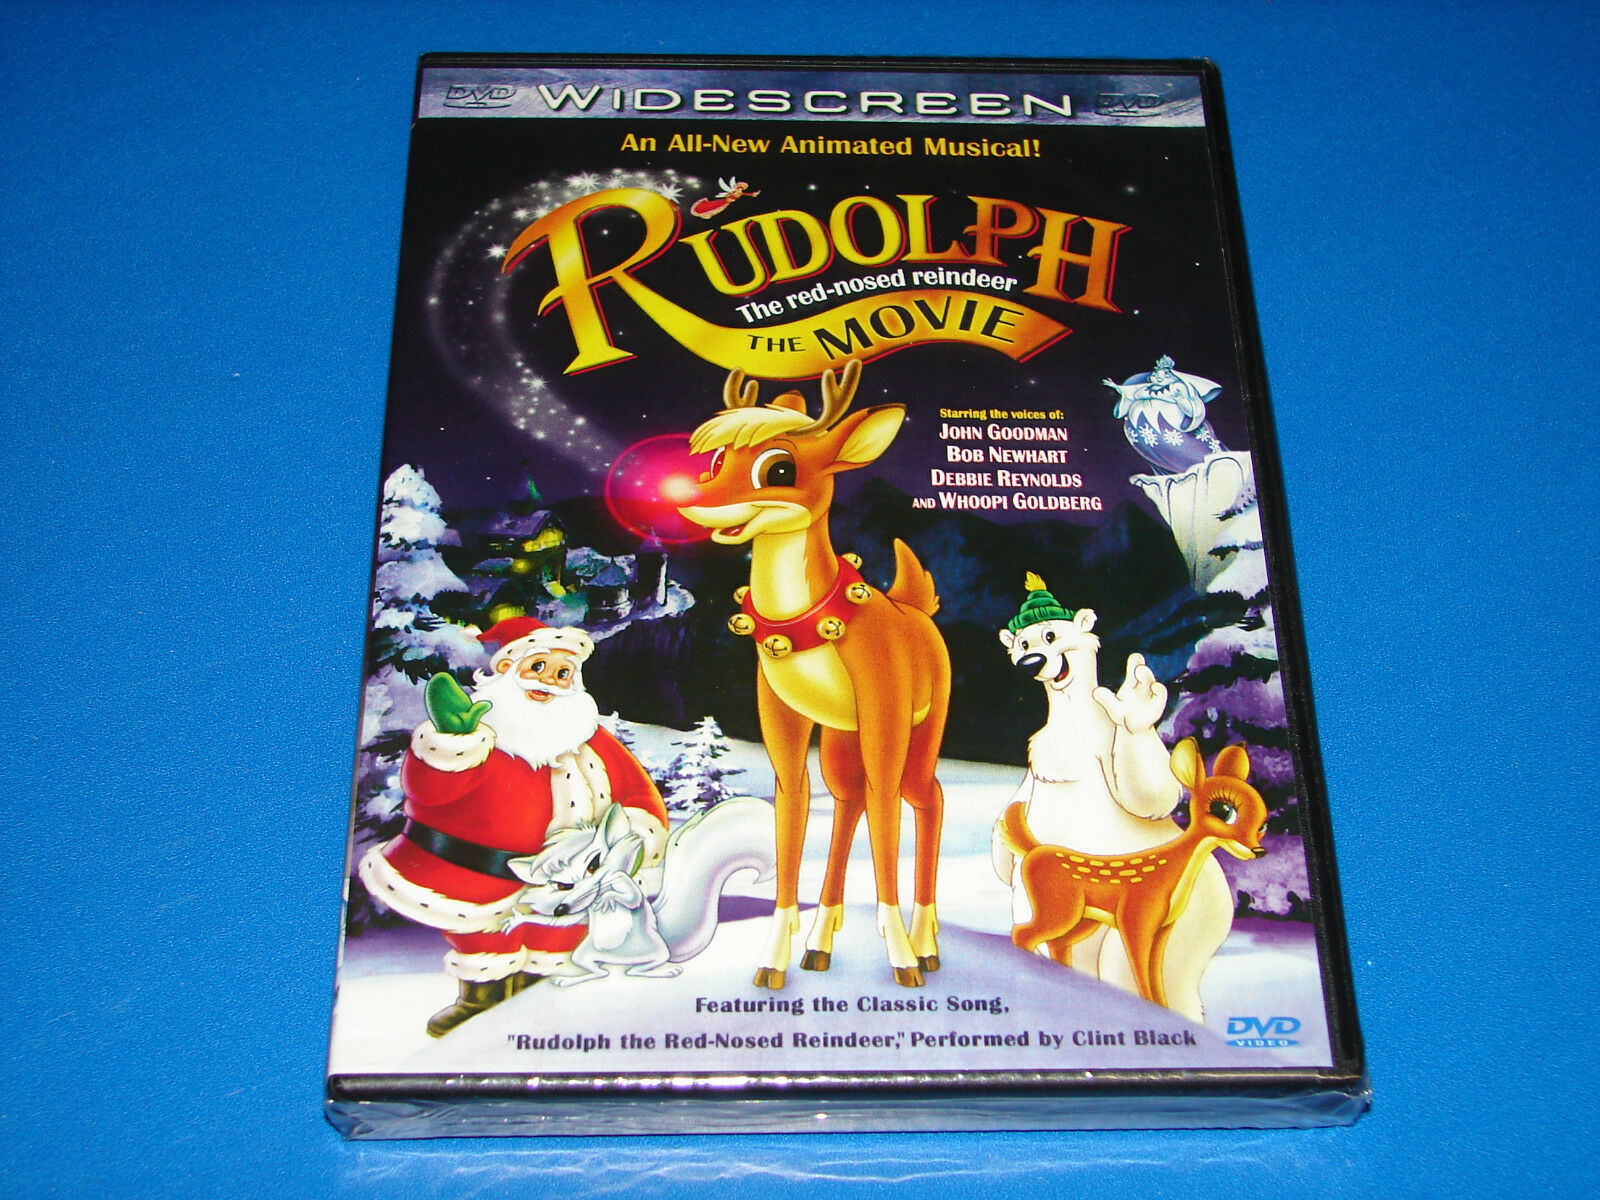 Rudolph the Red-Nosed Reindeer: The Movie (DVD, 1999) | eBay